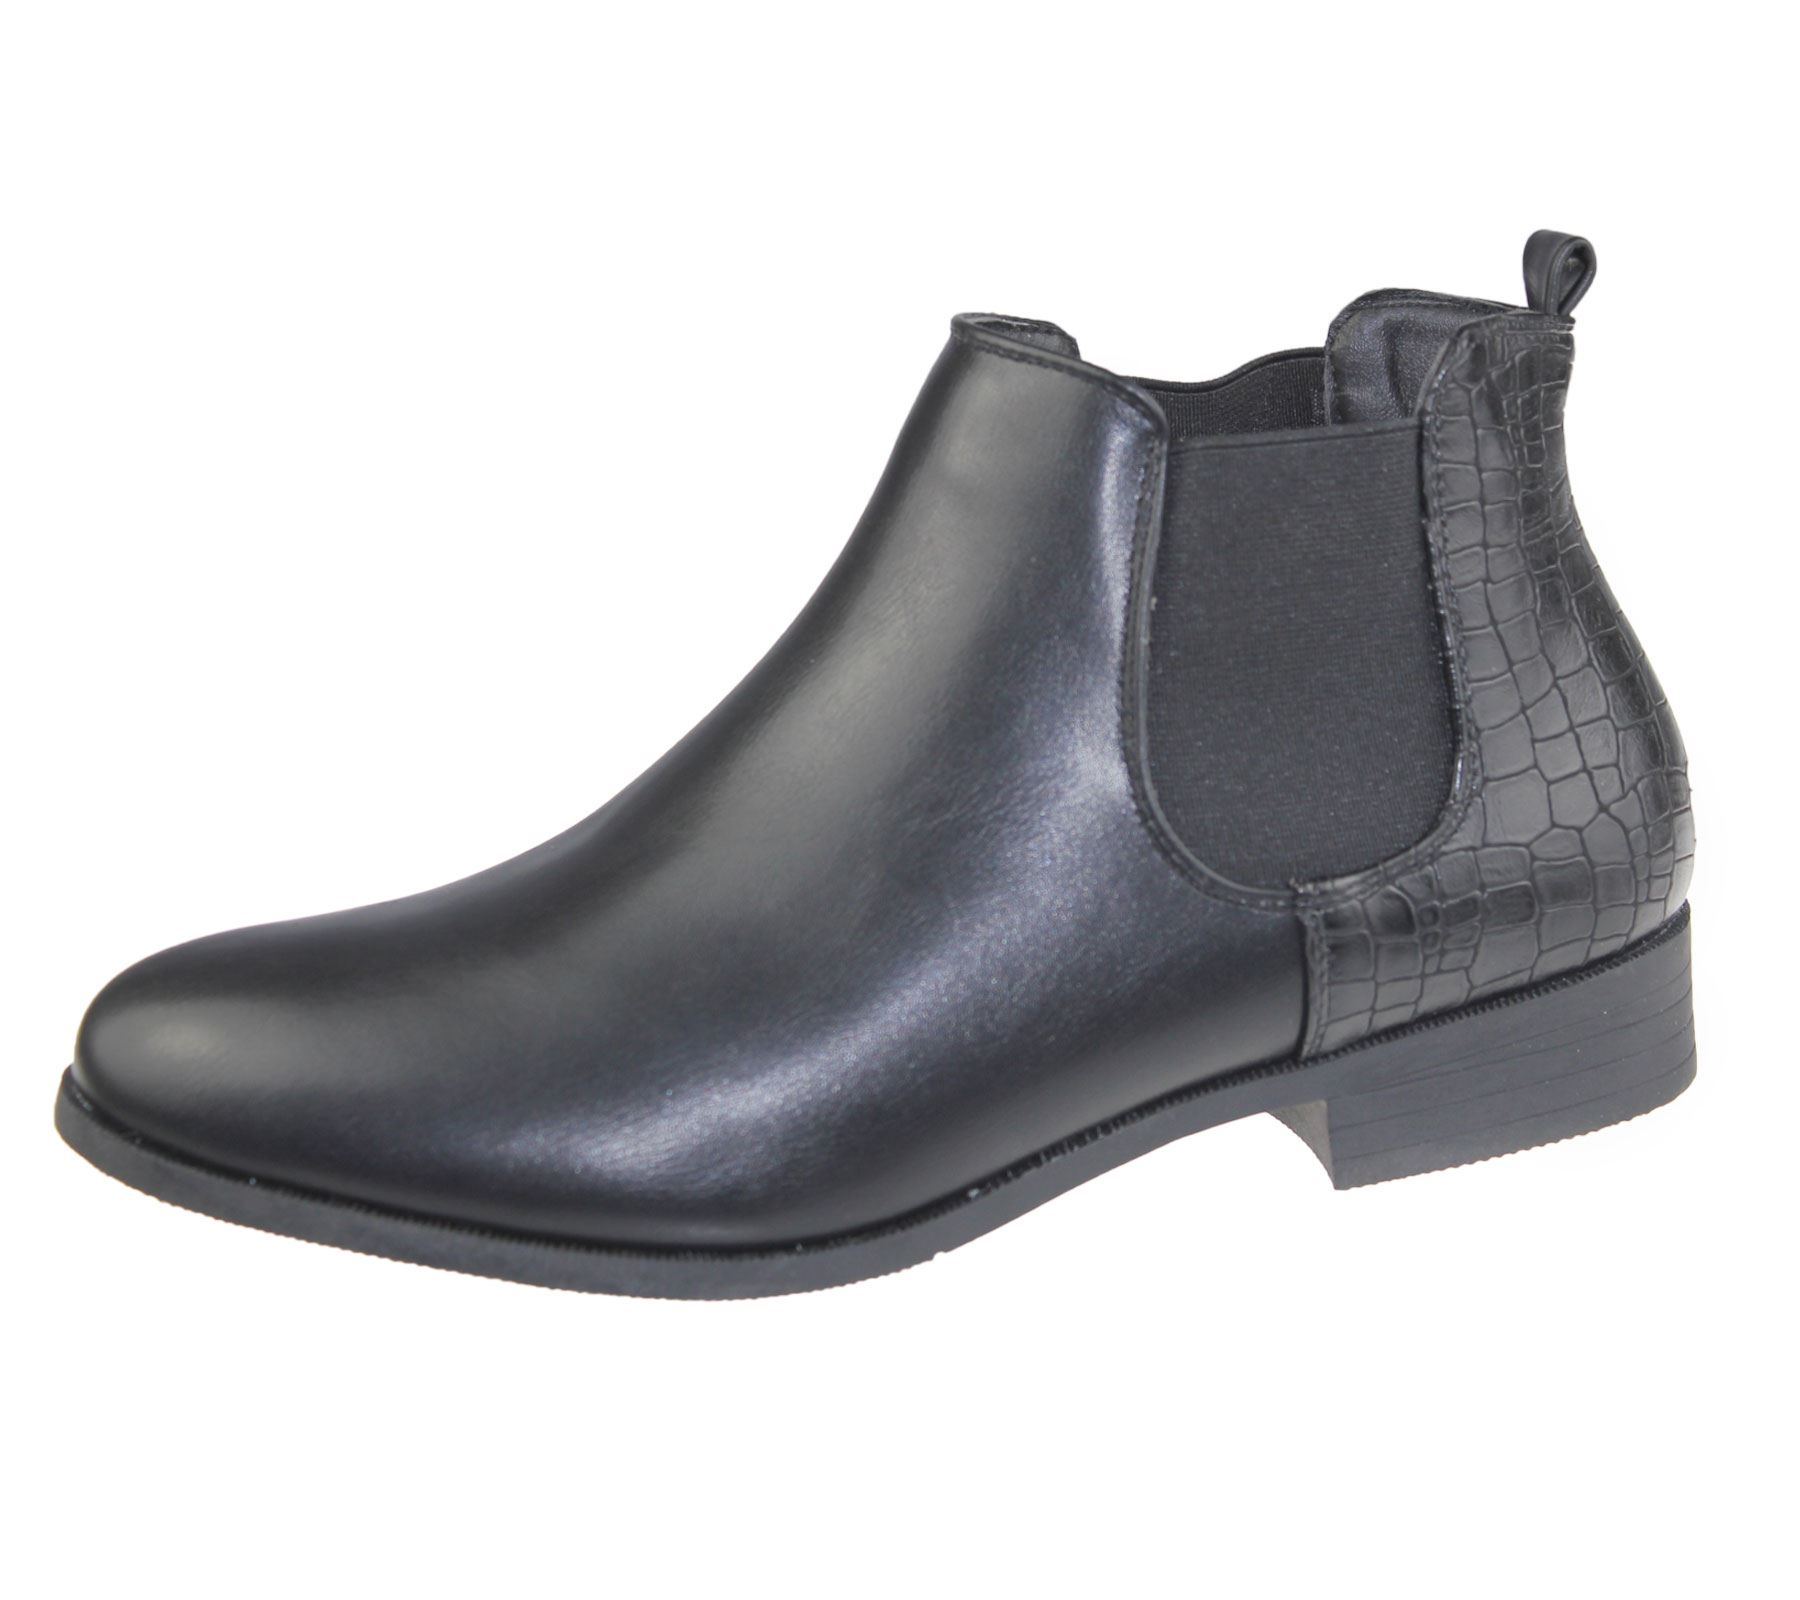 Womens Ankle Boots Ladies Chelsea High Top Casual Riding